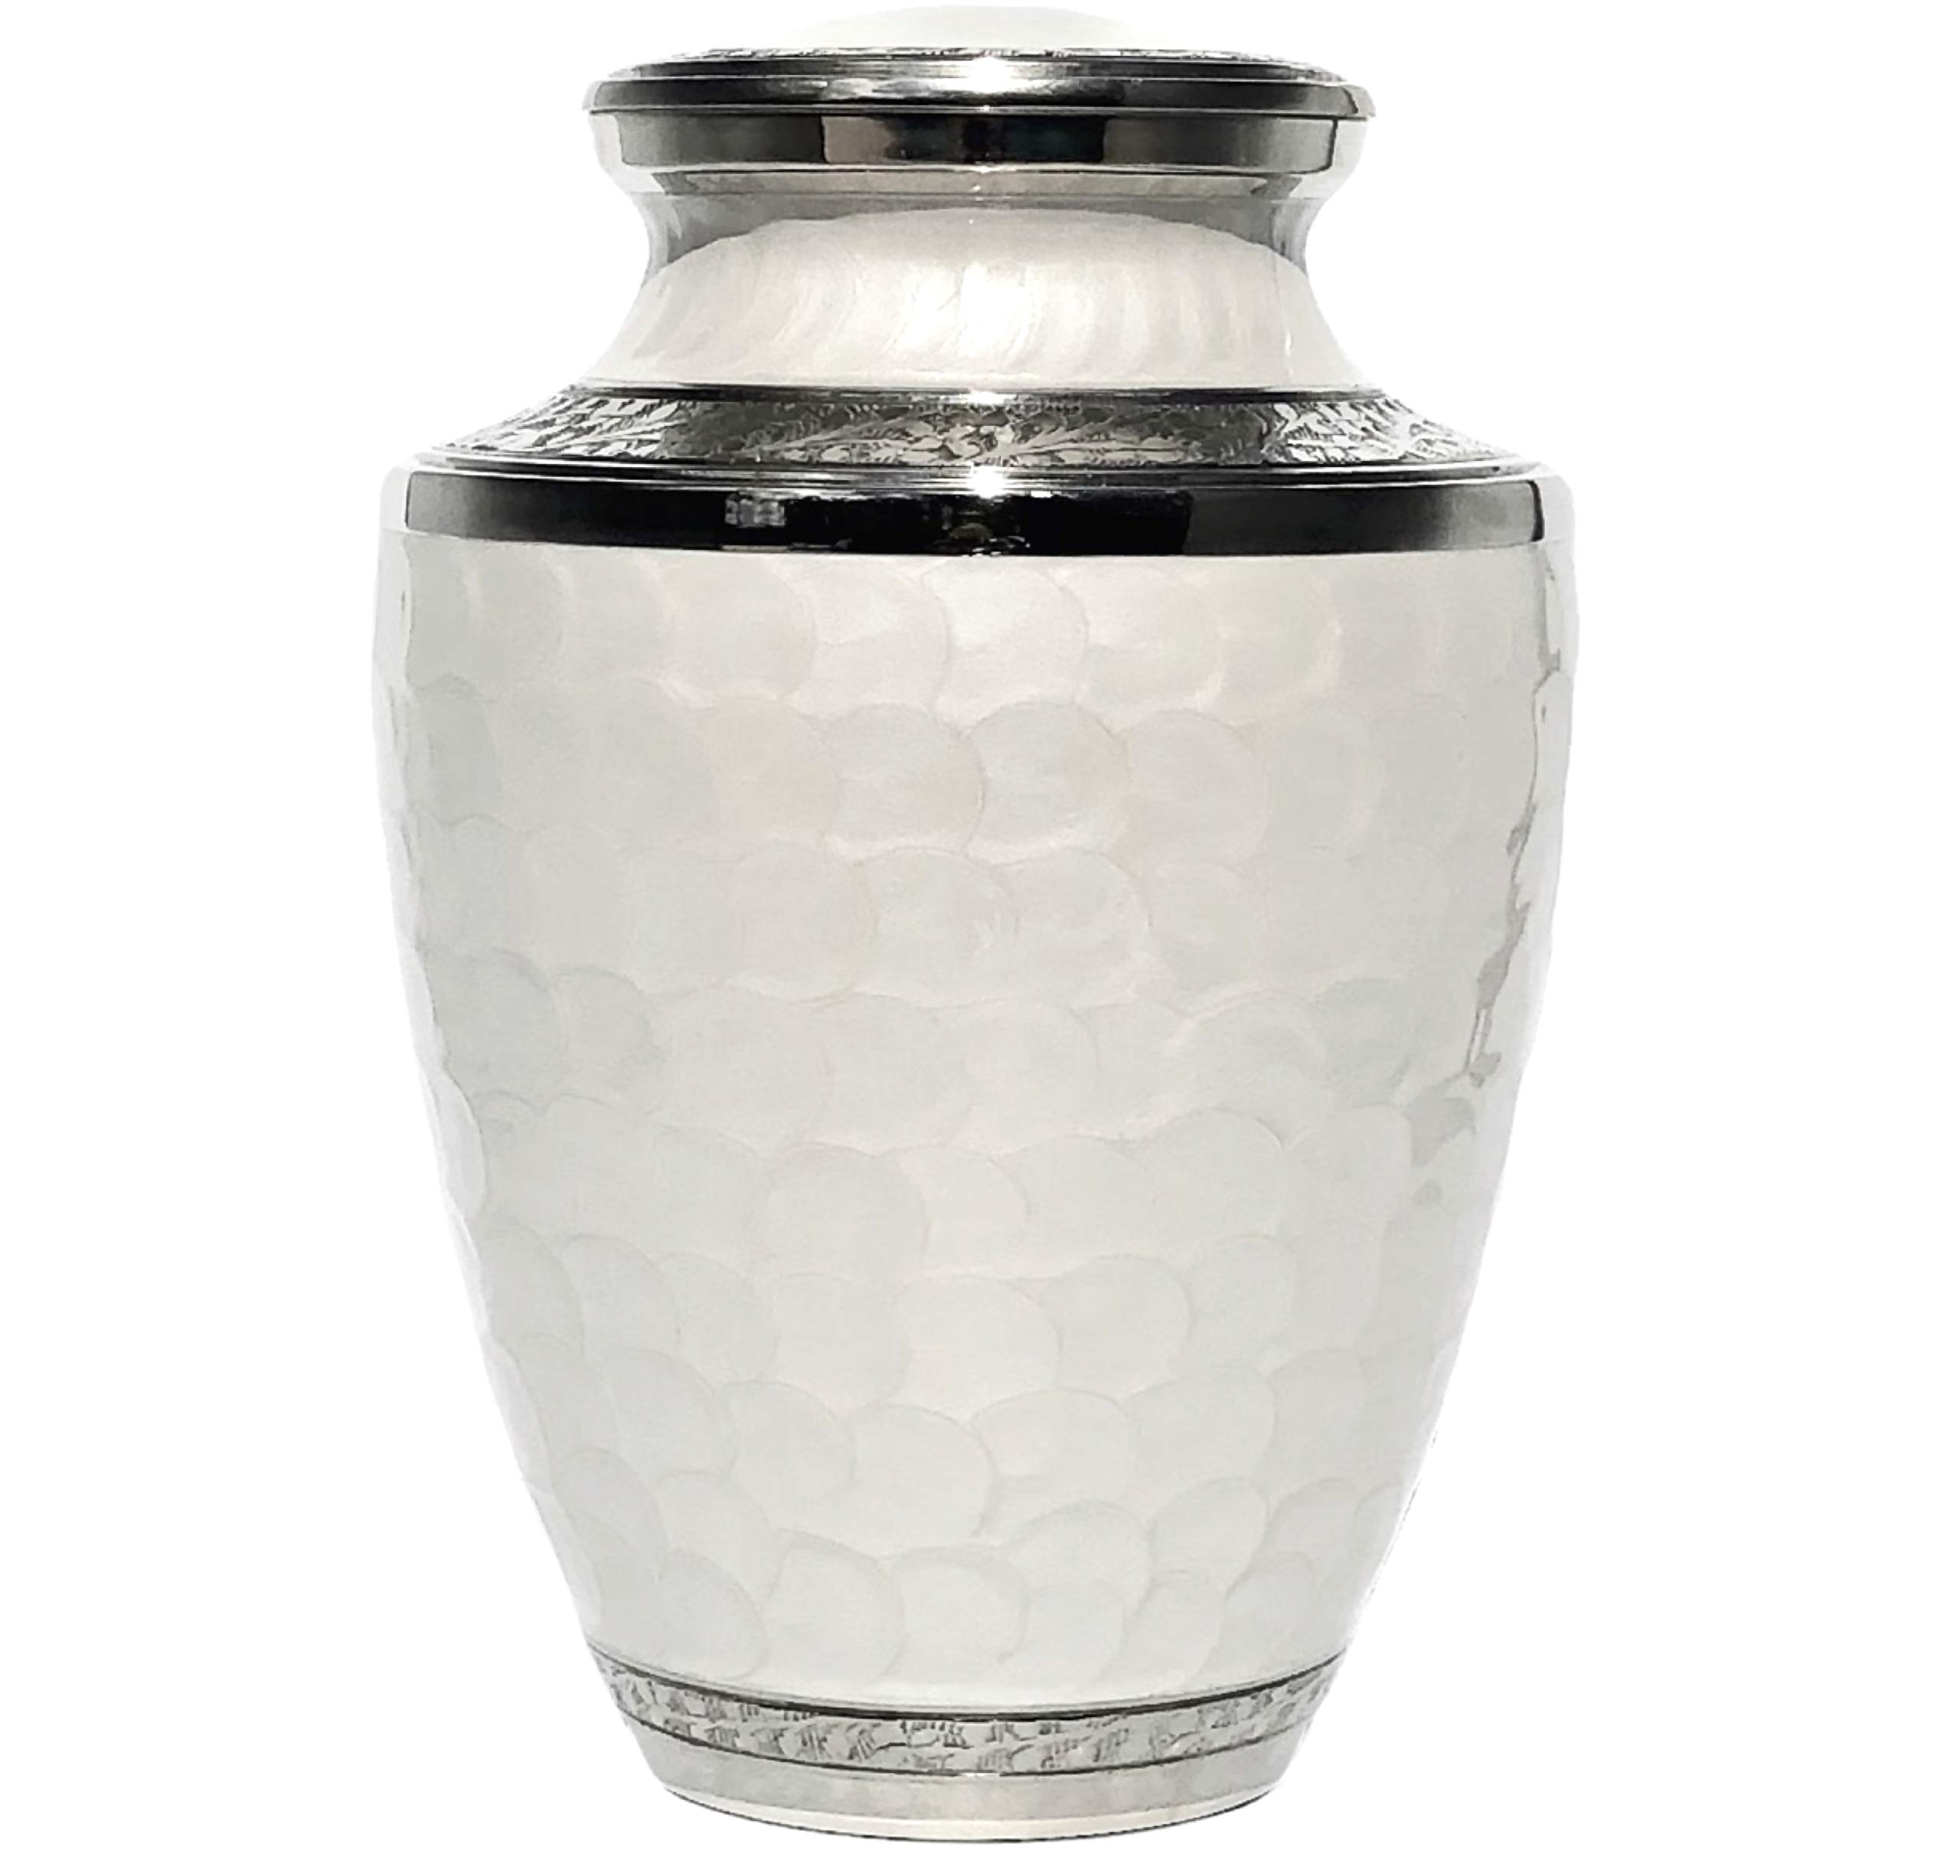 Eternal Harmony Cremation Urn for Human Ashes | Funeral Urn Carefully Handcrafted with Elegant Finishes to Honor and Remember Your Loved One | Adult Urn Large Size with Beautiful Velvet Bag by Eternal Harmony (Image #2)